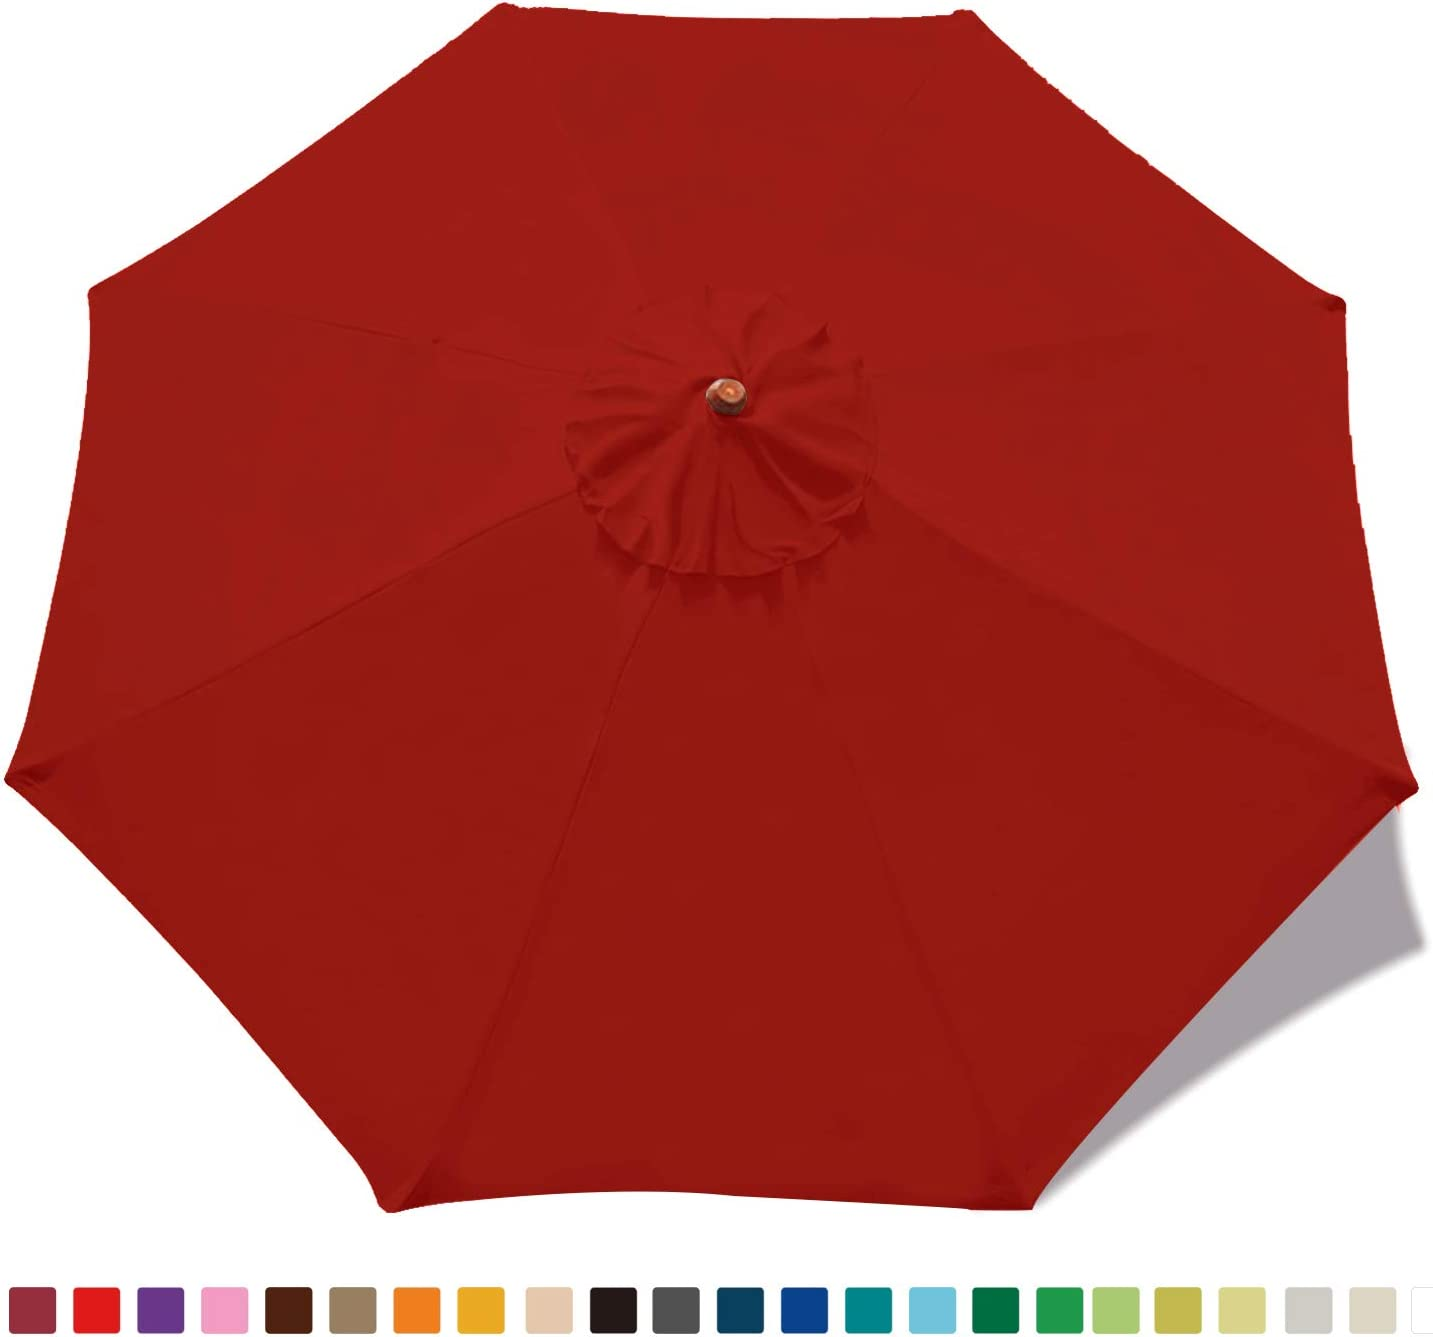 ABCCANOPY 9ft Umbrella Top for Patio Market Umbrella Replacement Canopy with 8 Ribs Red